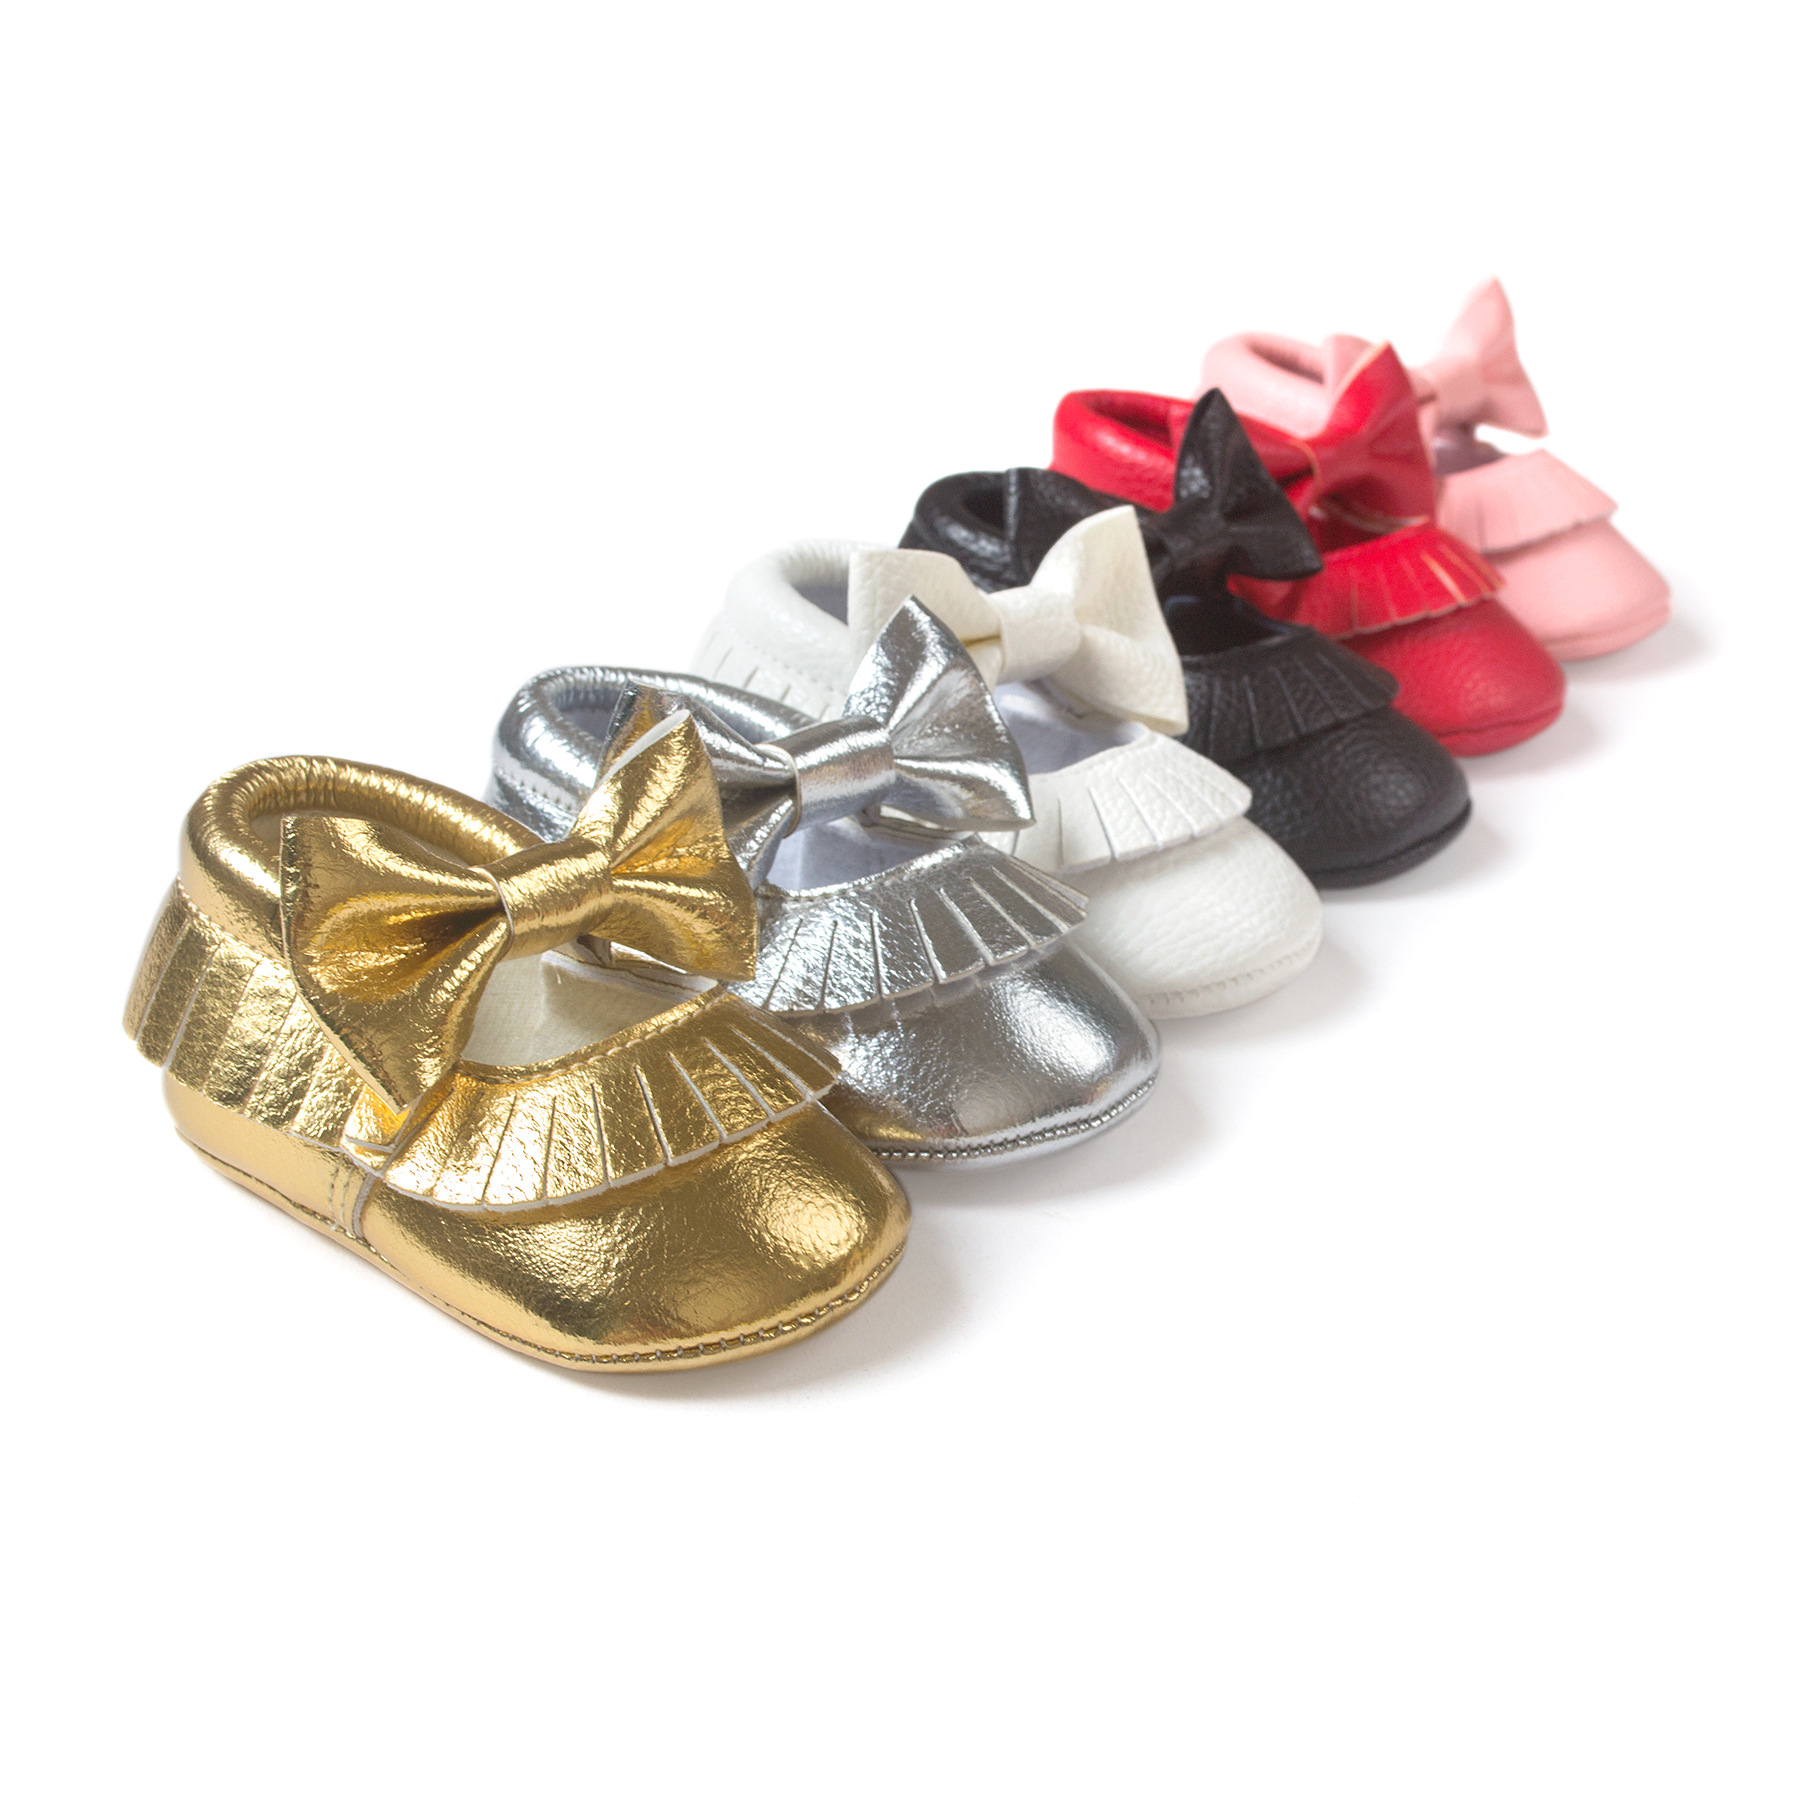 Hollow Baby Shoes Tassel Bow Infant Moccasins Soft Moccs Kids PU